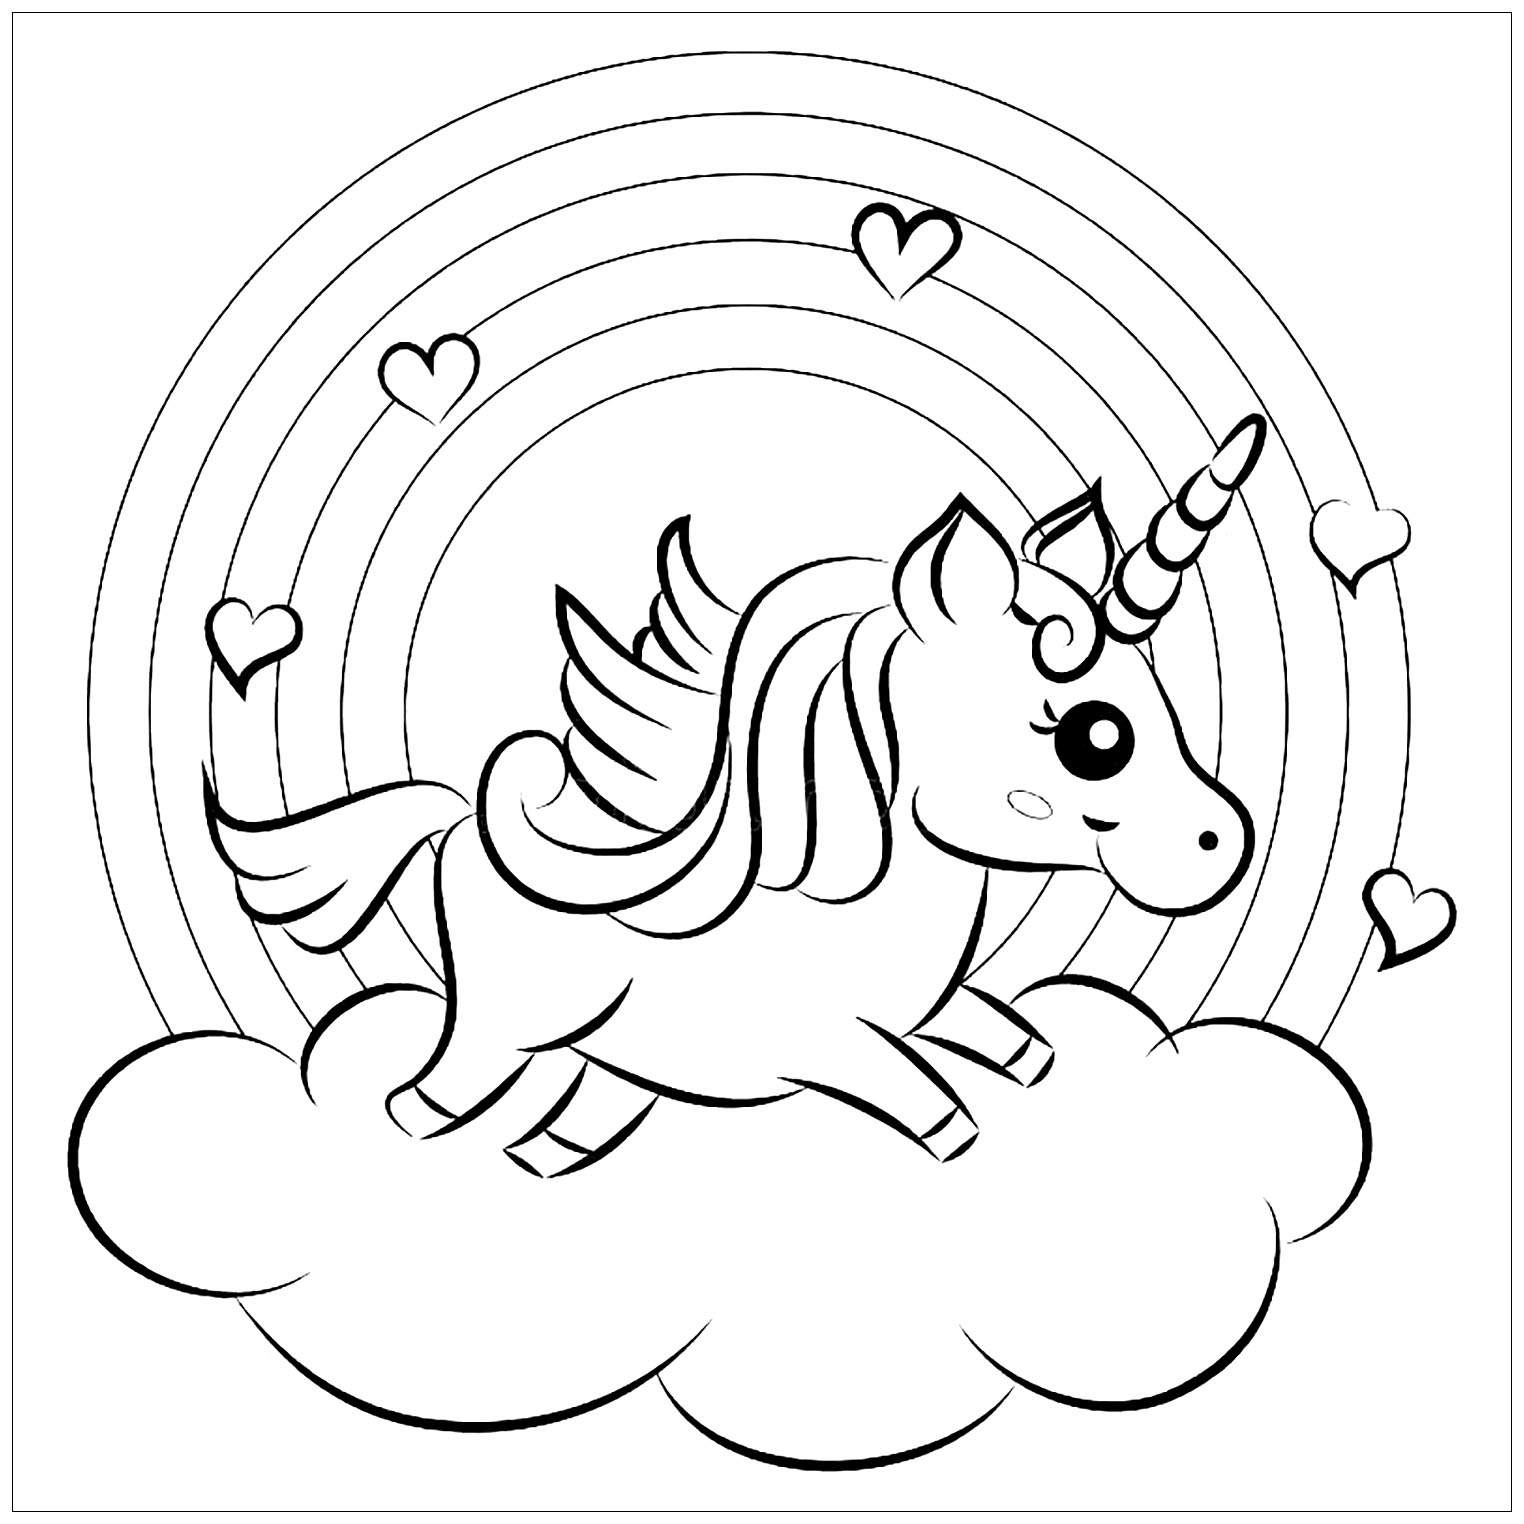 Coloring Sheet Free Unicorn Coloring Pages